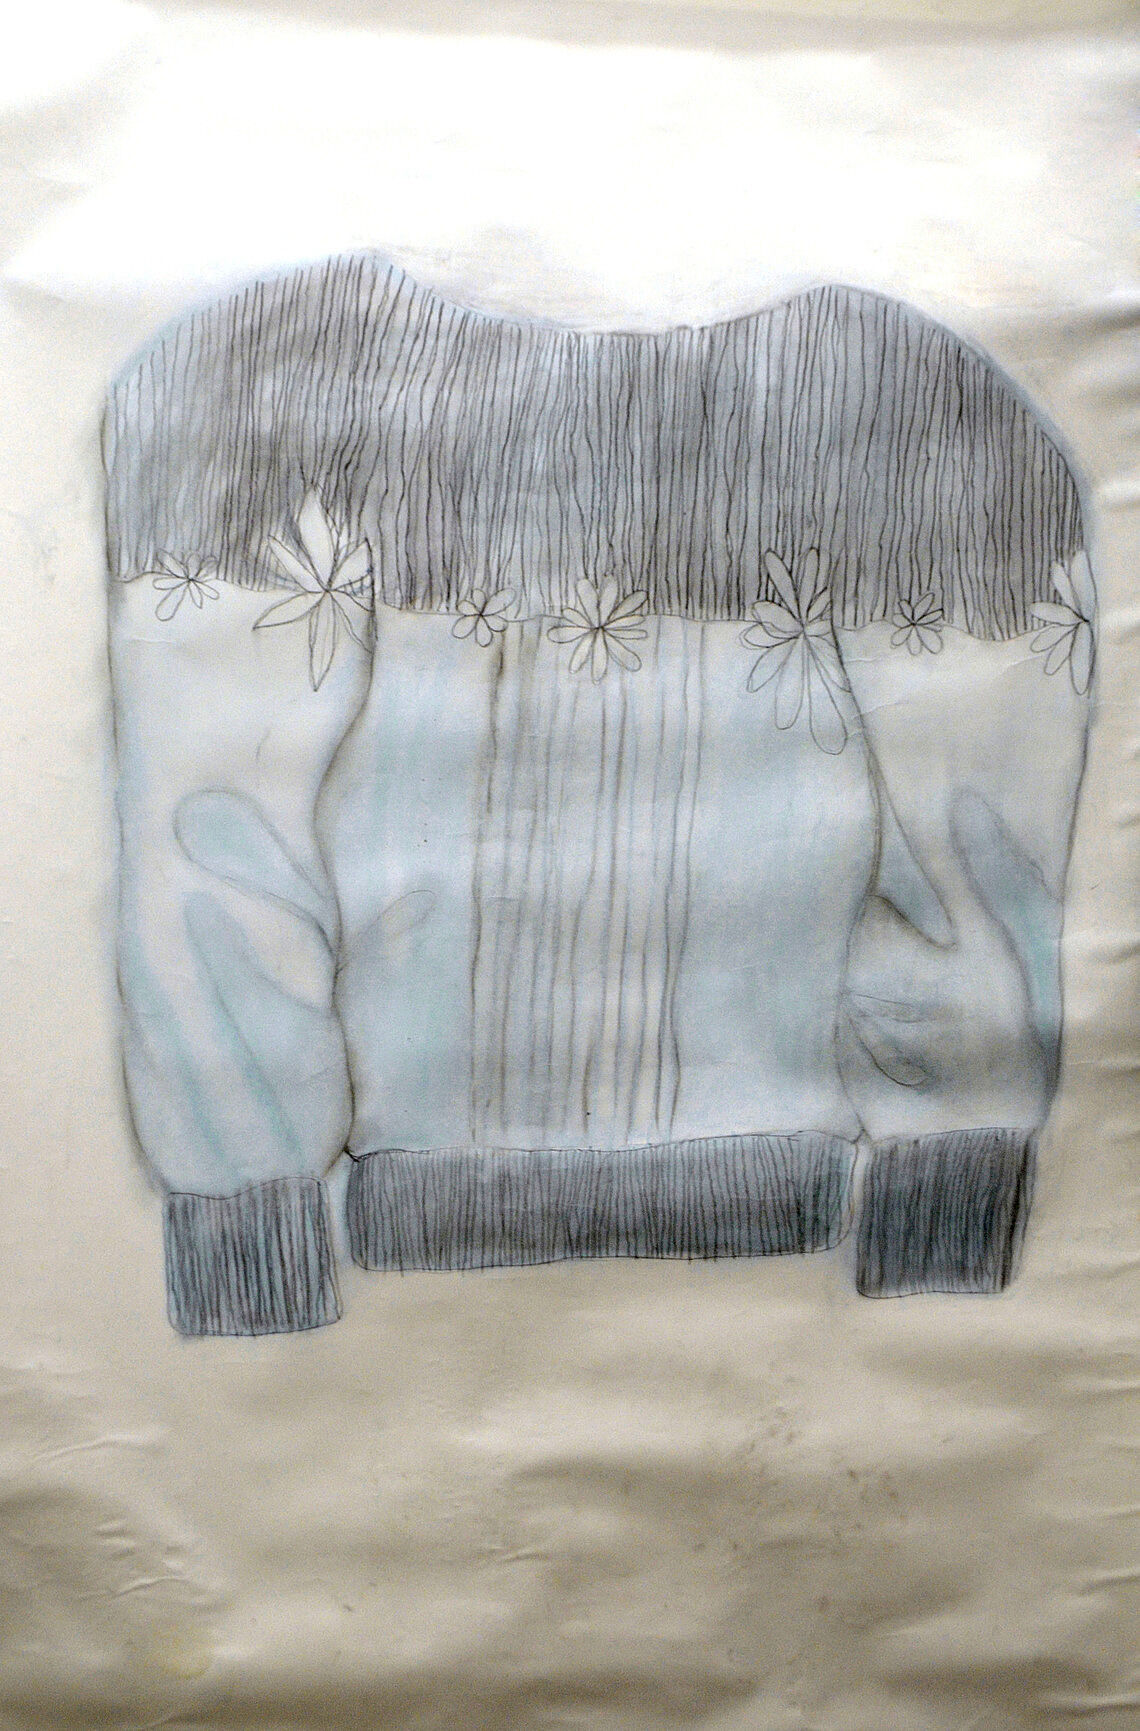 A drawing of a jacket with blue, white, and black shades.